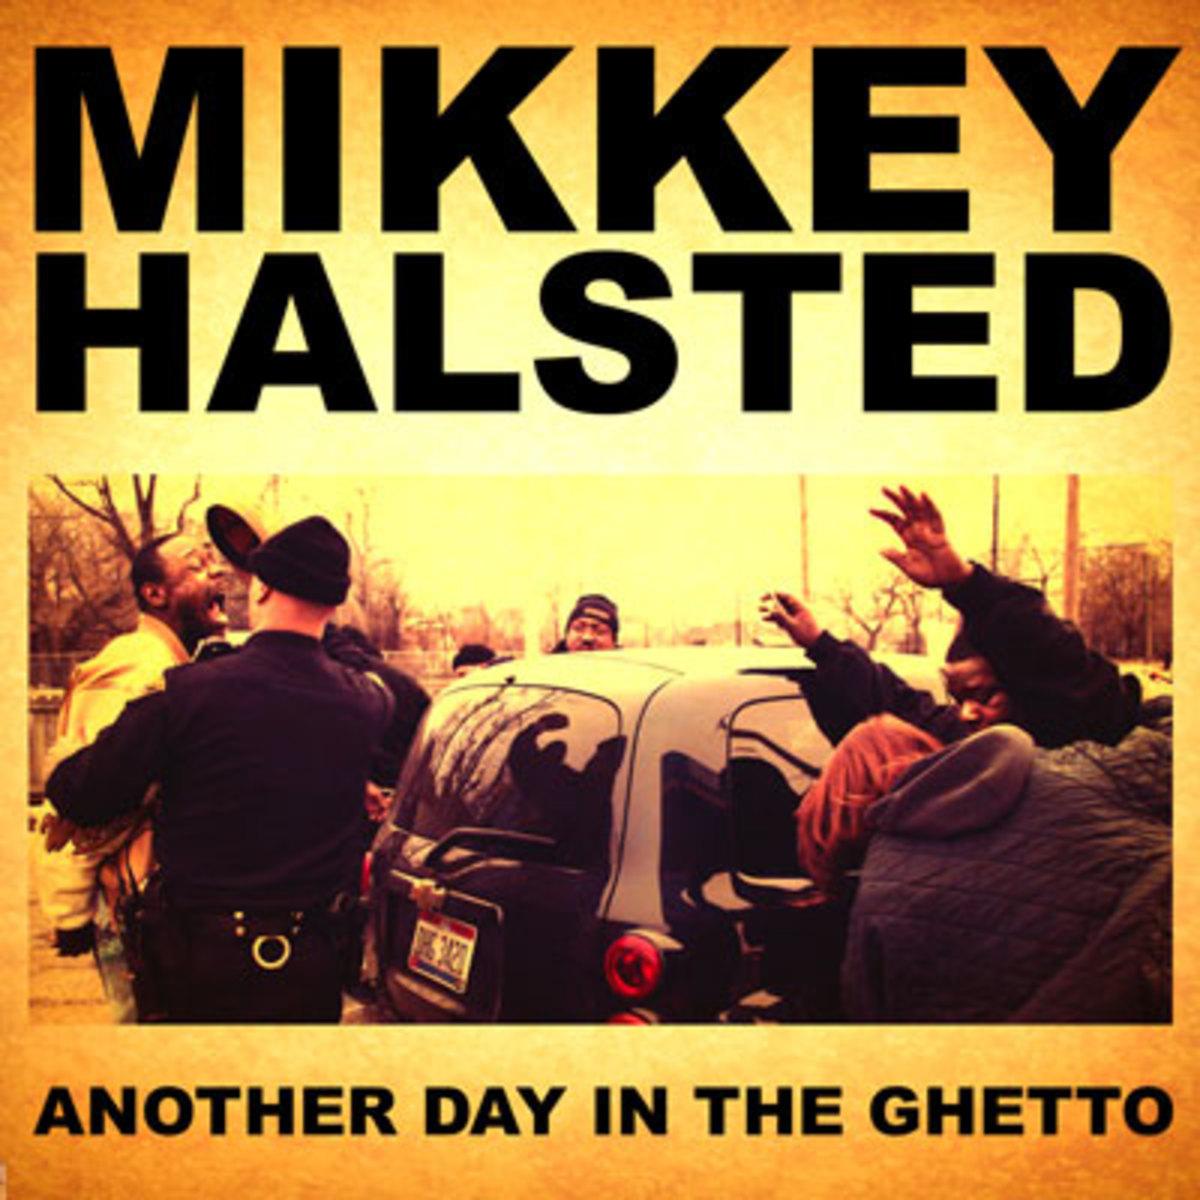 mikkeyhalsted-anotherday.jpg